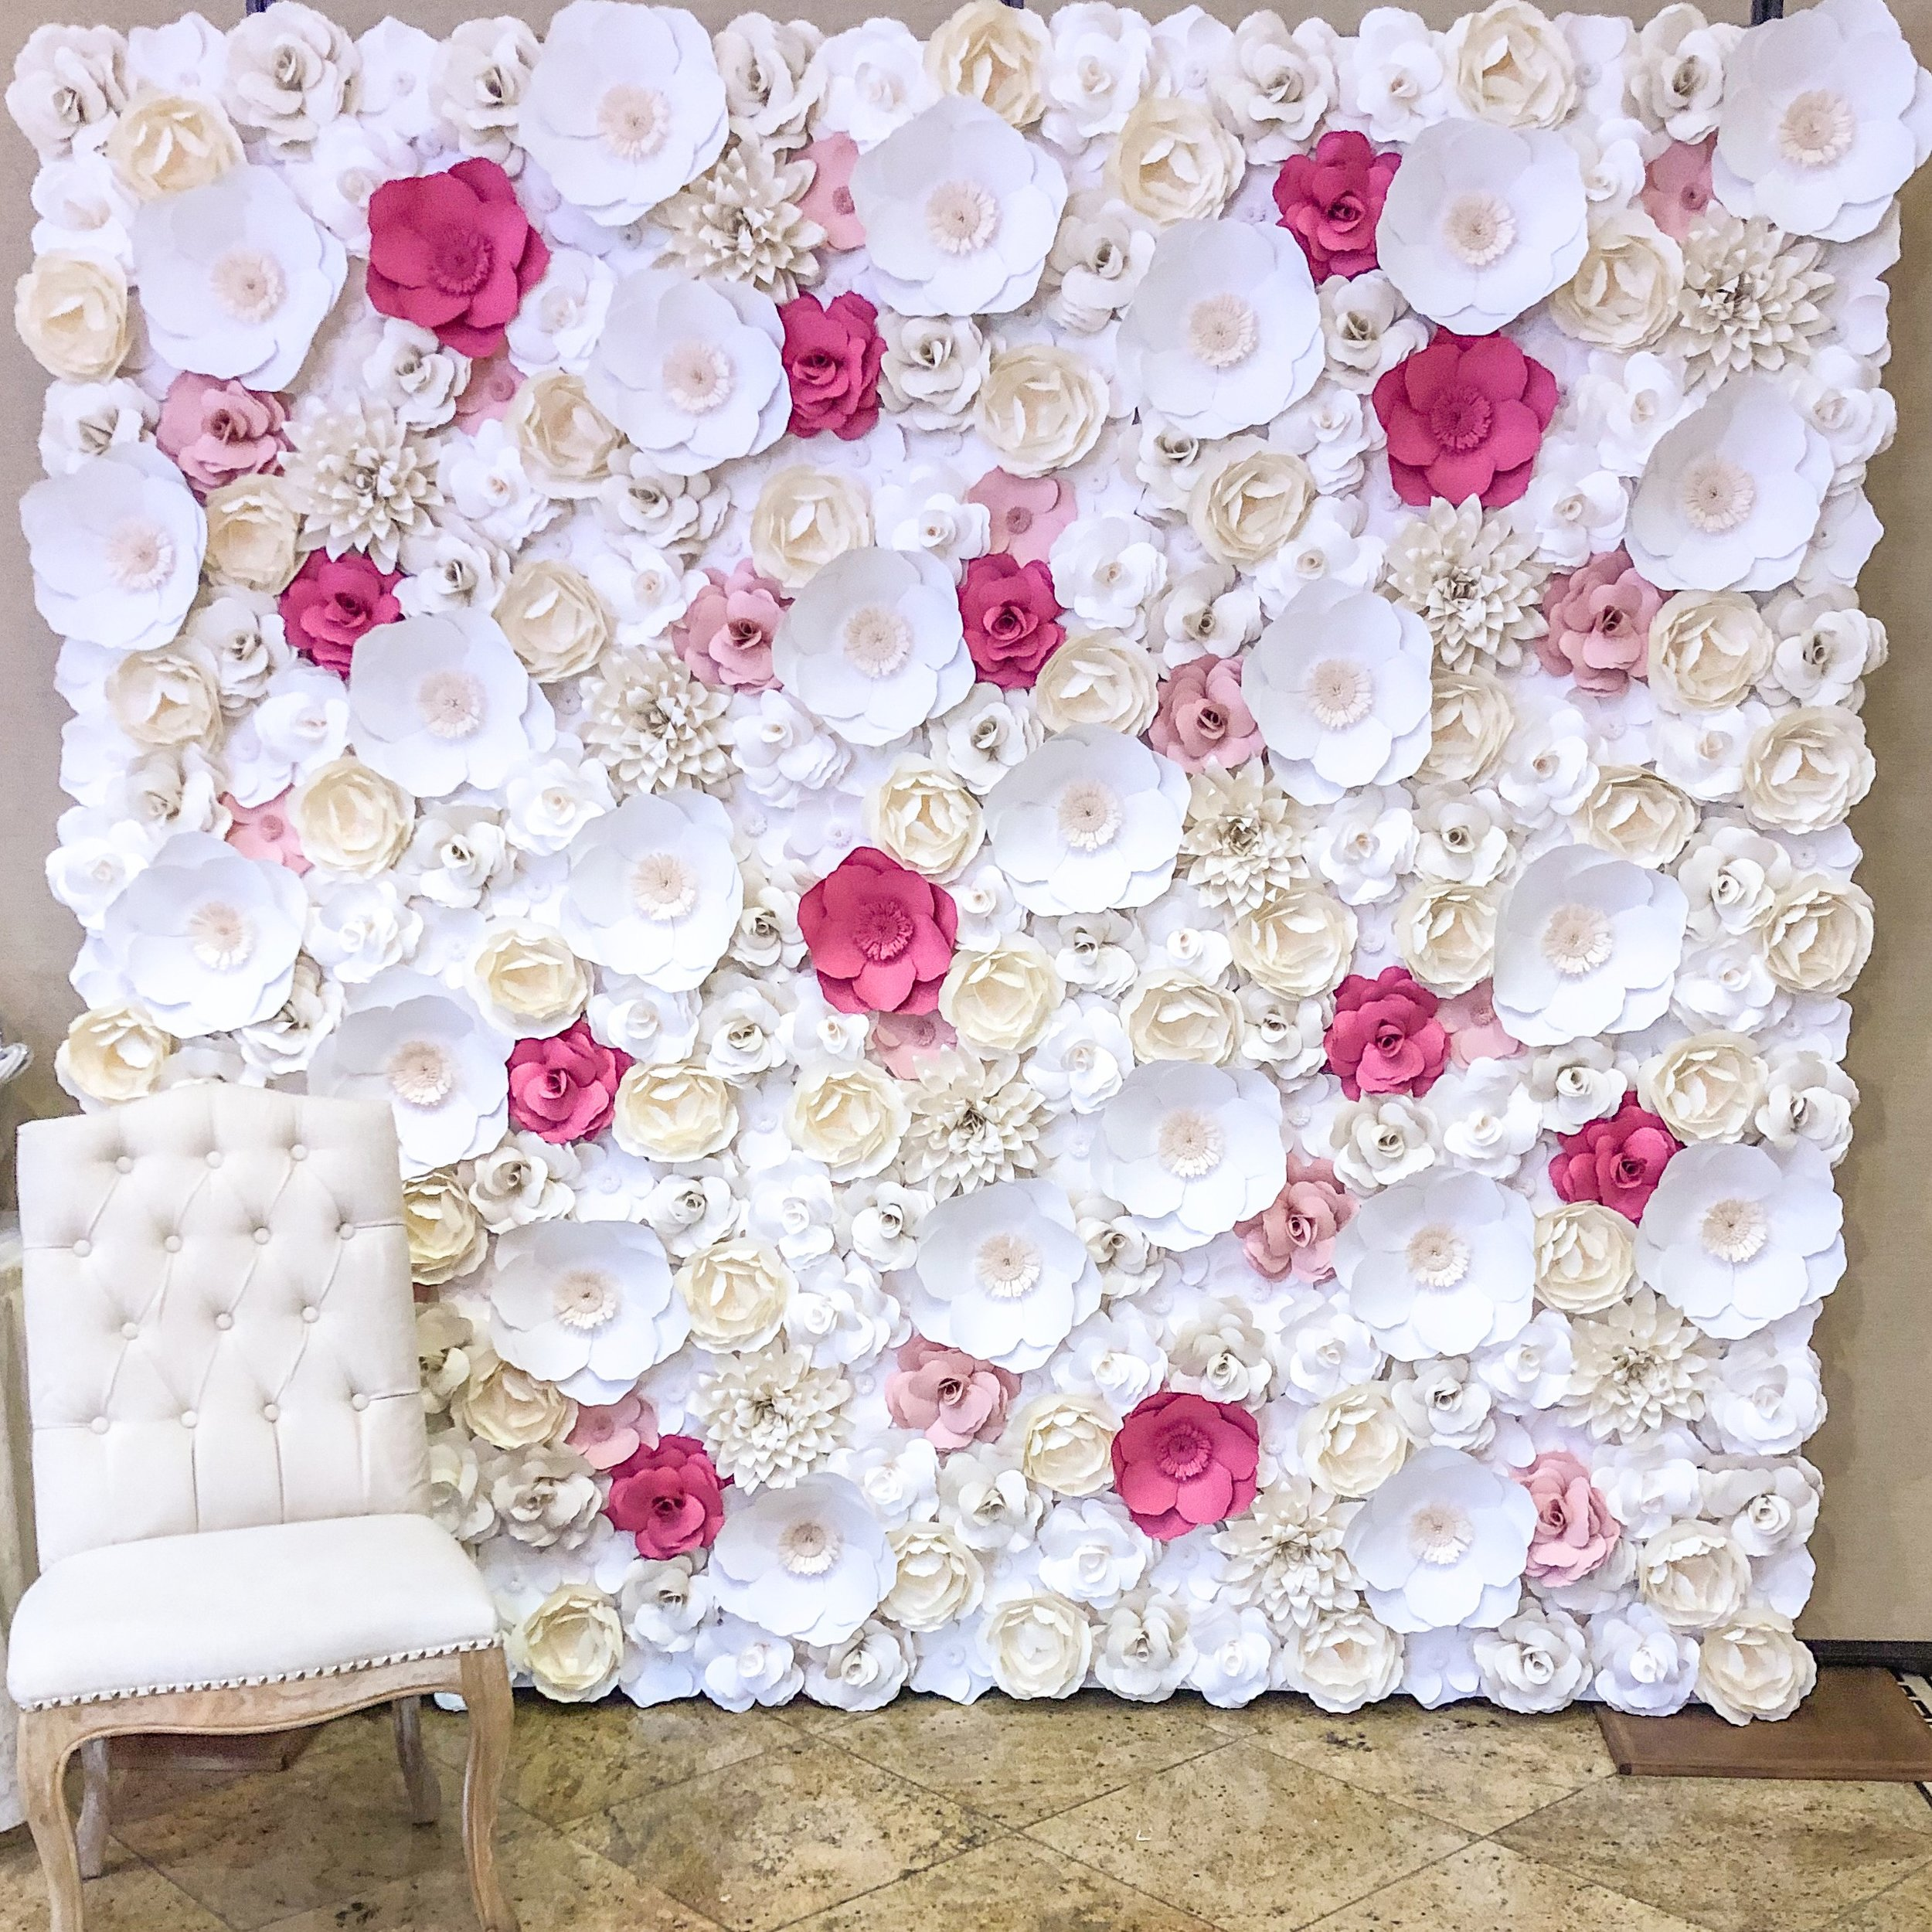 Paper Flower Wall - Rental Rate: 400.00Dimensions: 8' H x 8' LQuantity Available: 1Colored flowers can be added for an additional 50.00 as shown in photo.